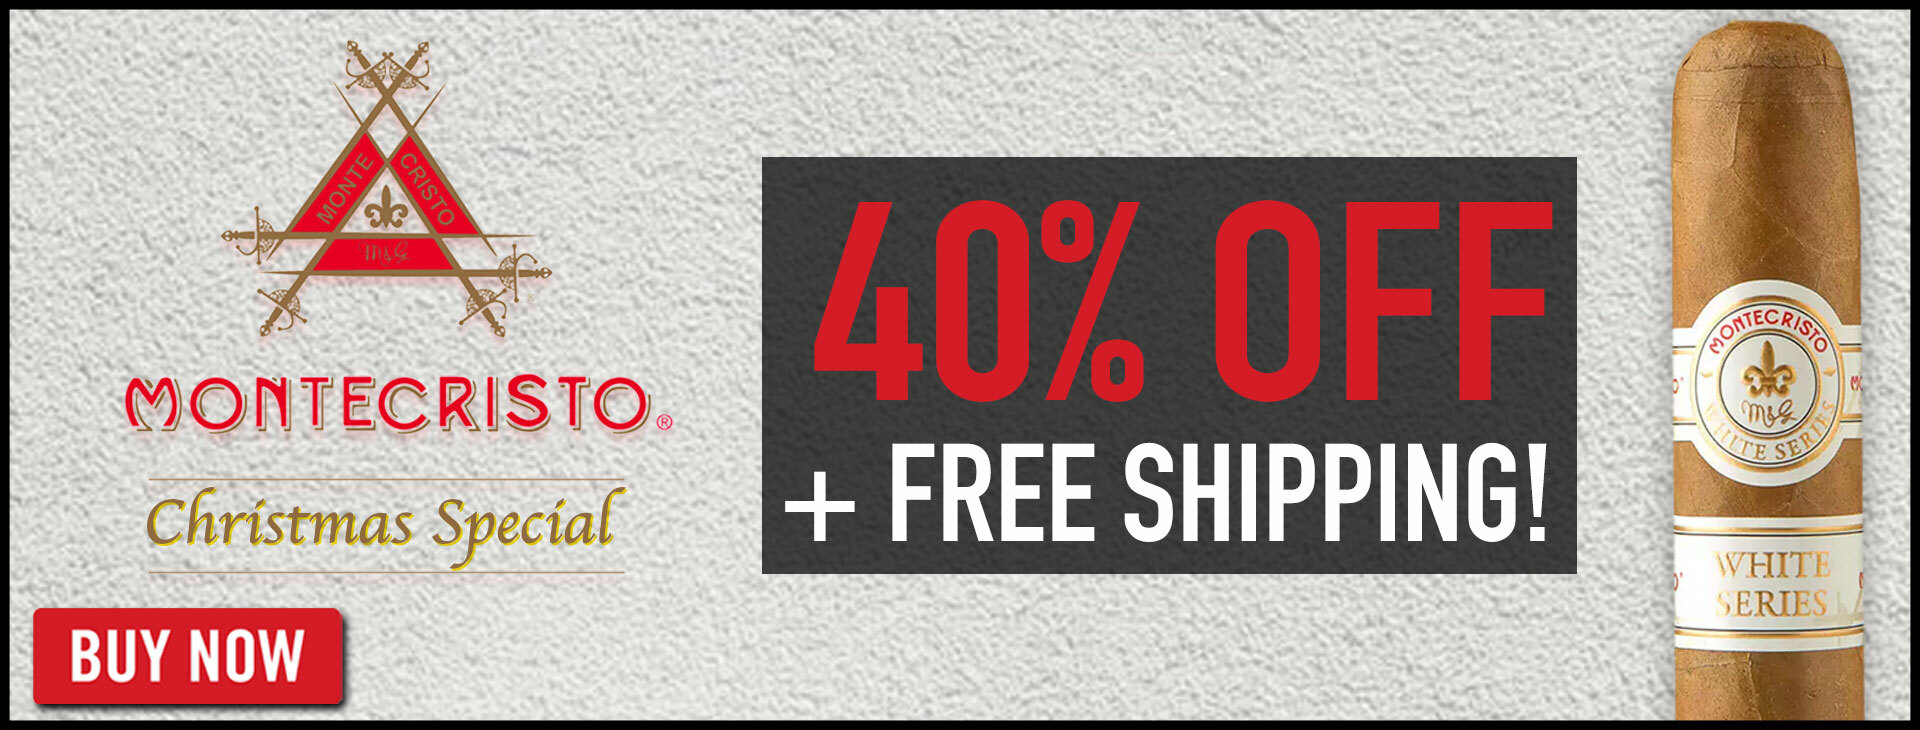 40% OFF Montecristo 10-Packs!